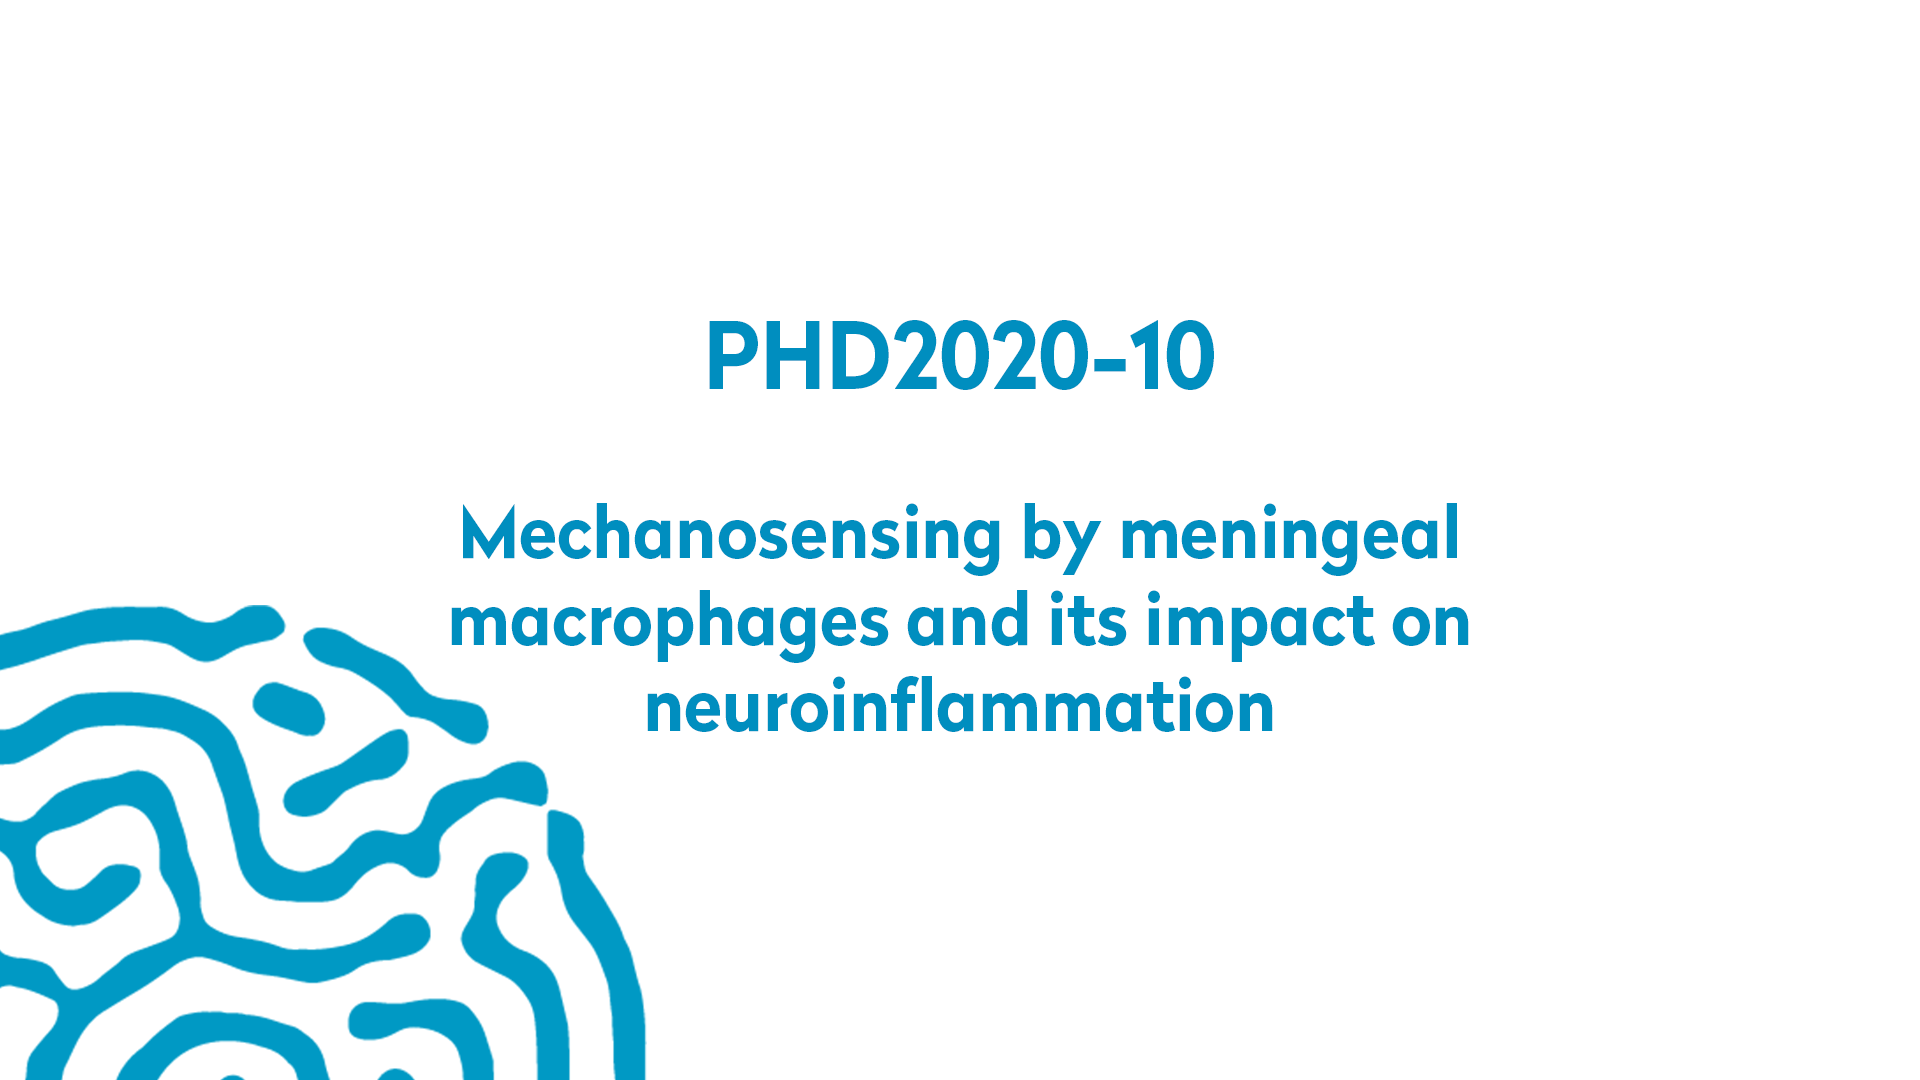 PHD2020-10 | Mechanosensing by meningeal macrophages and its impact on neuroinflammation